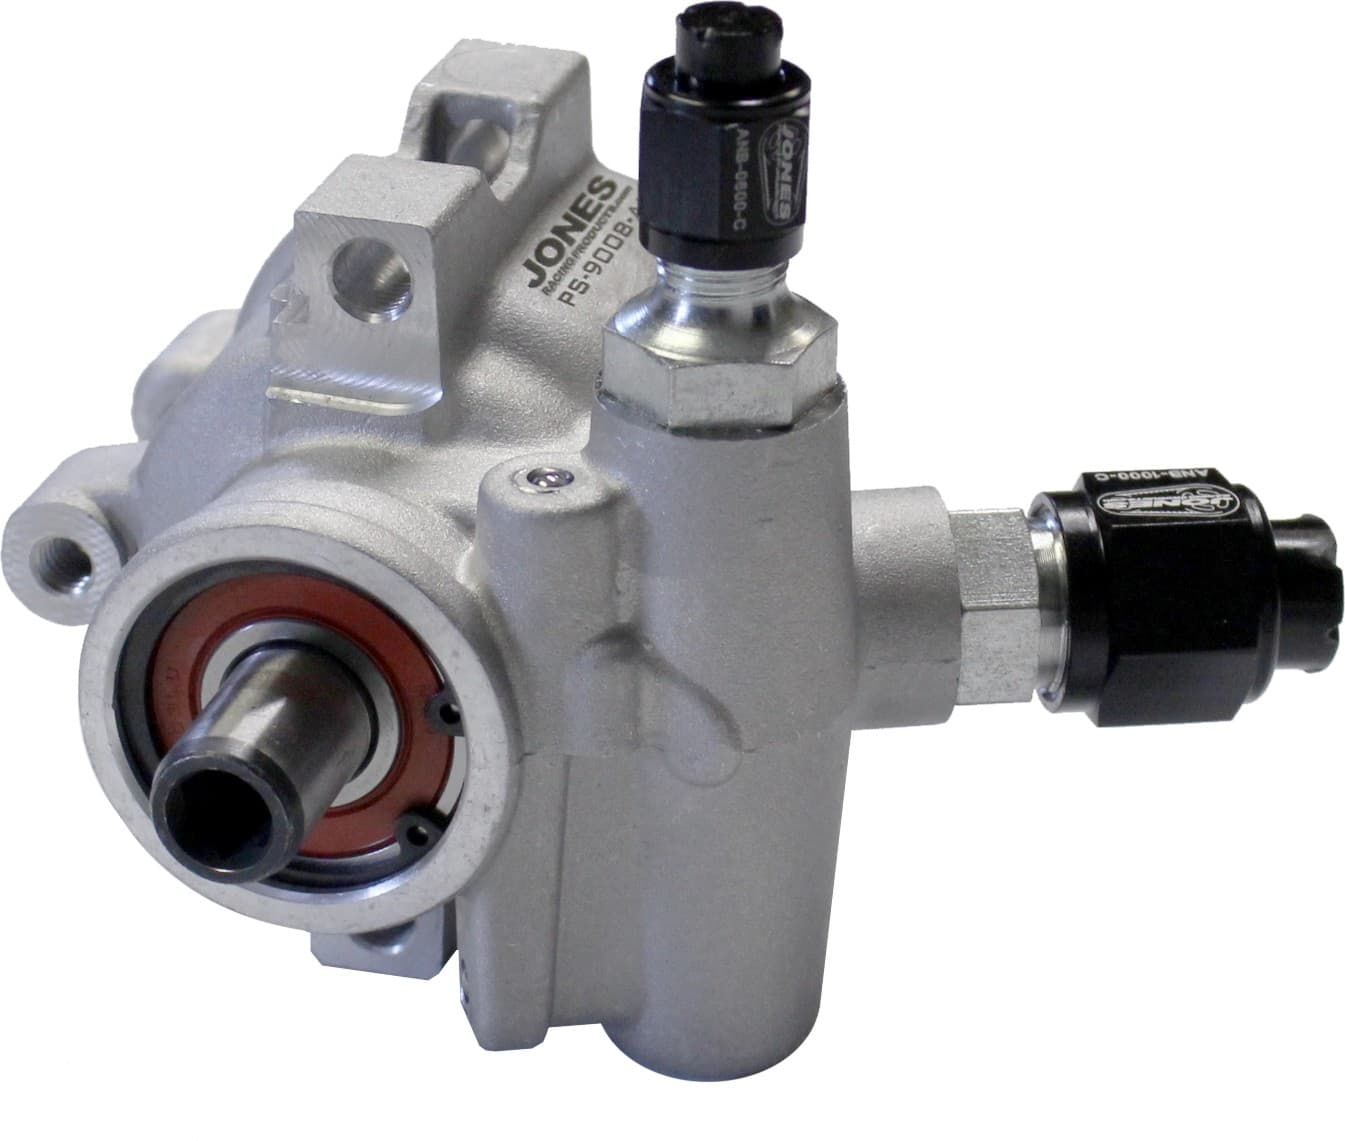 Jones Racing Power Steering Pumps PS-9008-AL